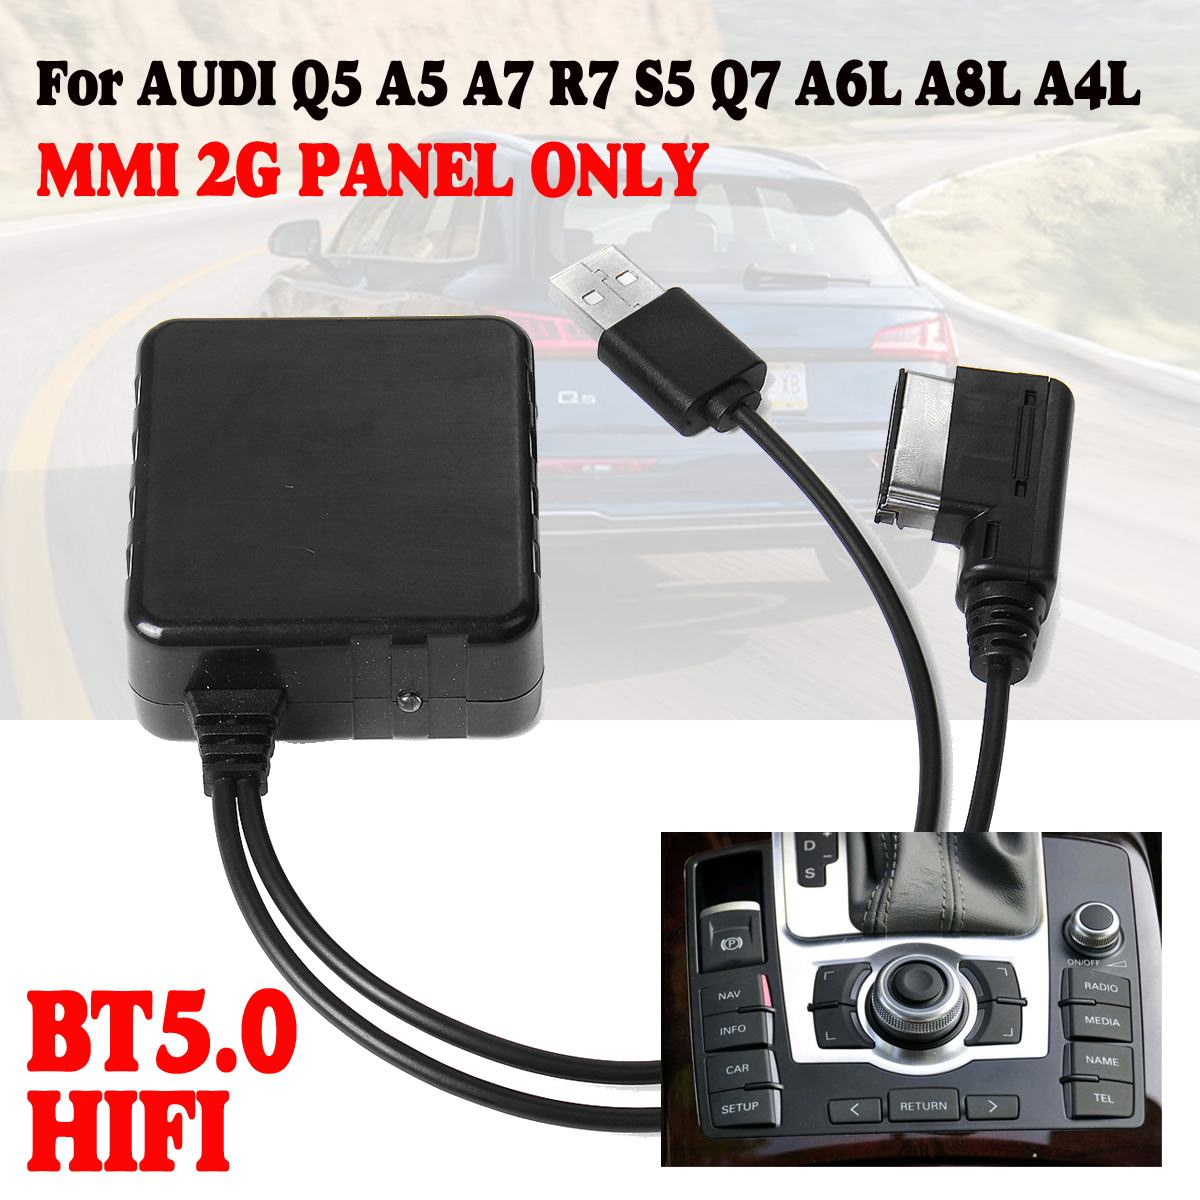 <font><b>12V</b></font> MMI 2G Car <font><b>bluetooth</b></font> <font><b>AUX</b></font> Cable <font><b>Adapter</b></font> Wireless For AUDI Q5 A5 A7 R7 S5 Q7 A6L A8L A4L image